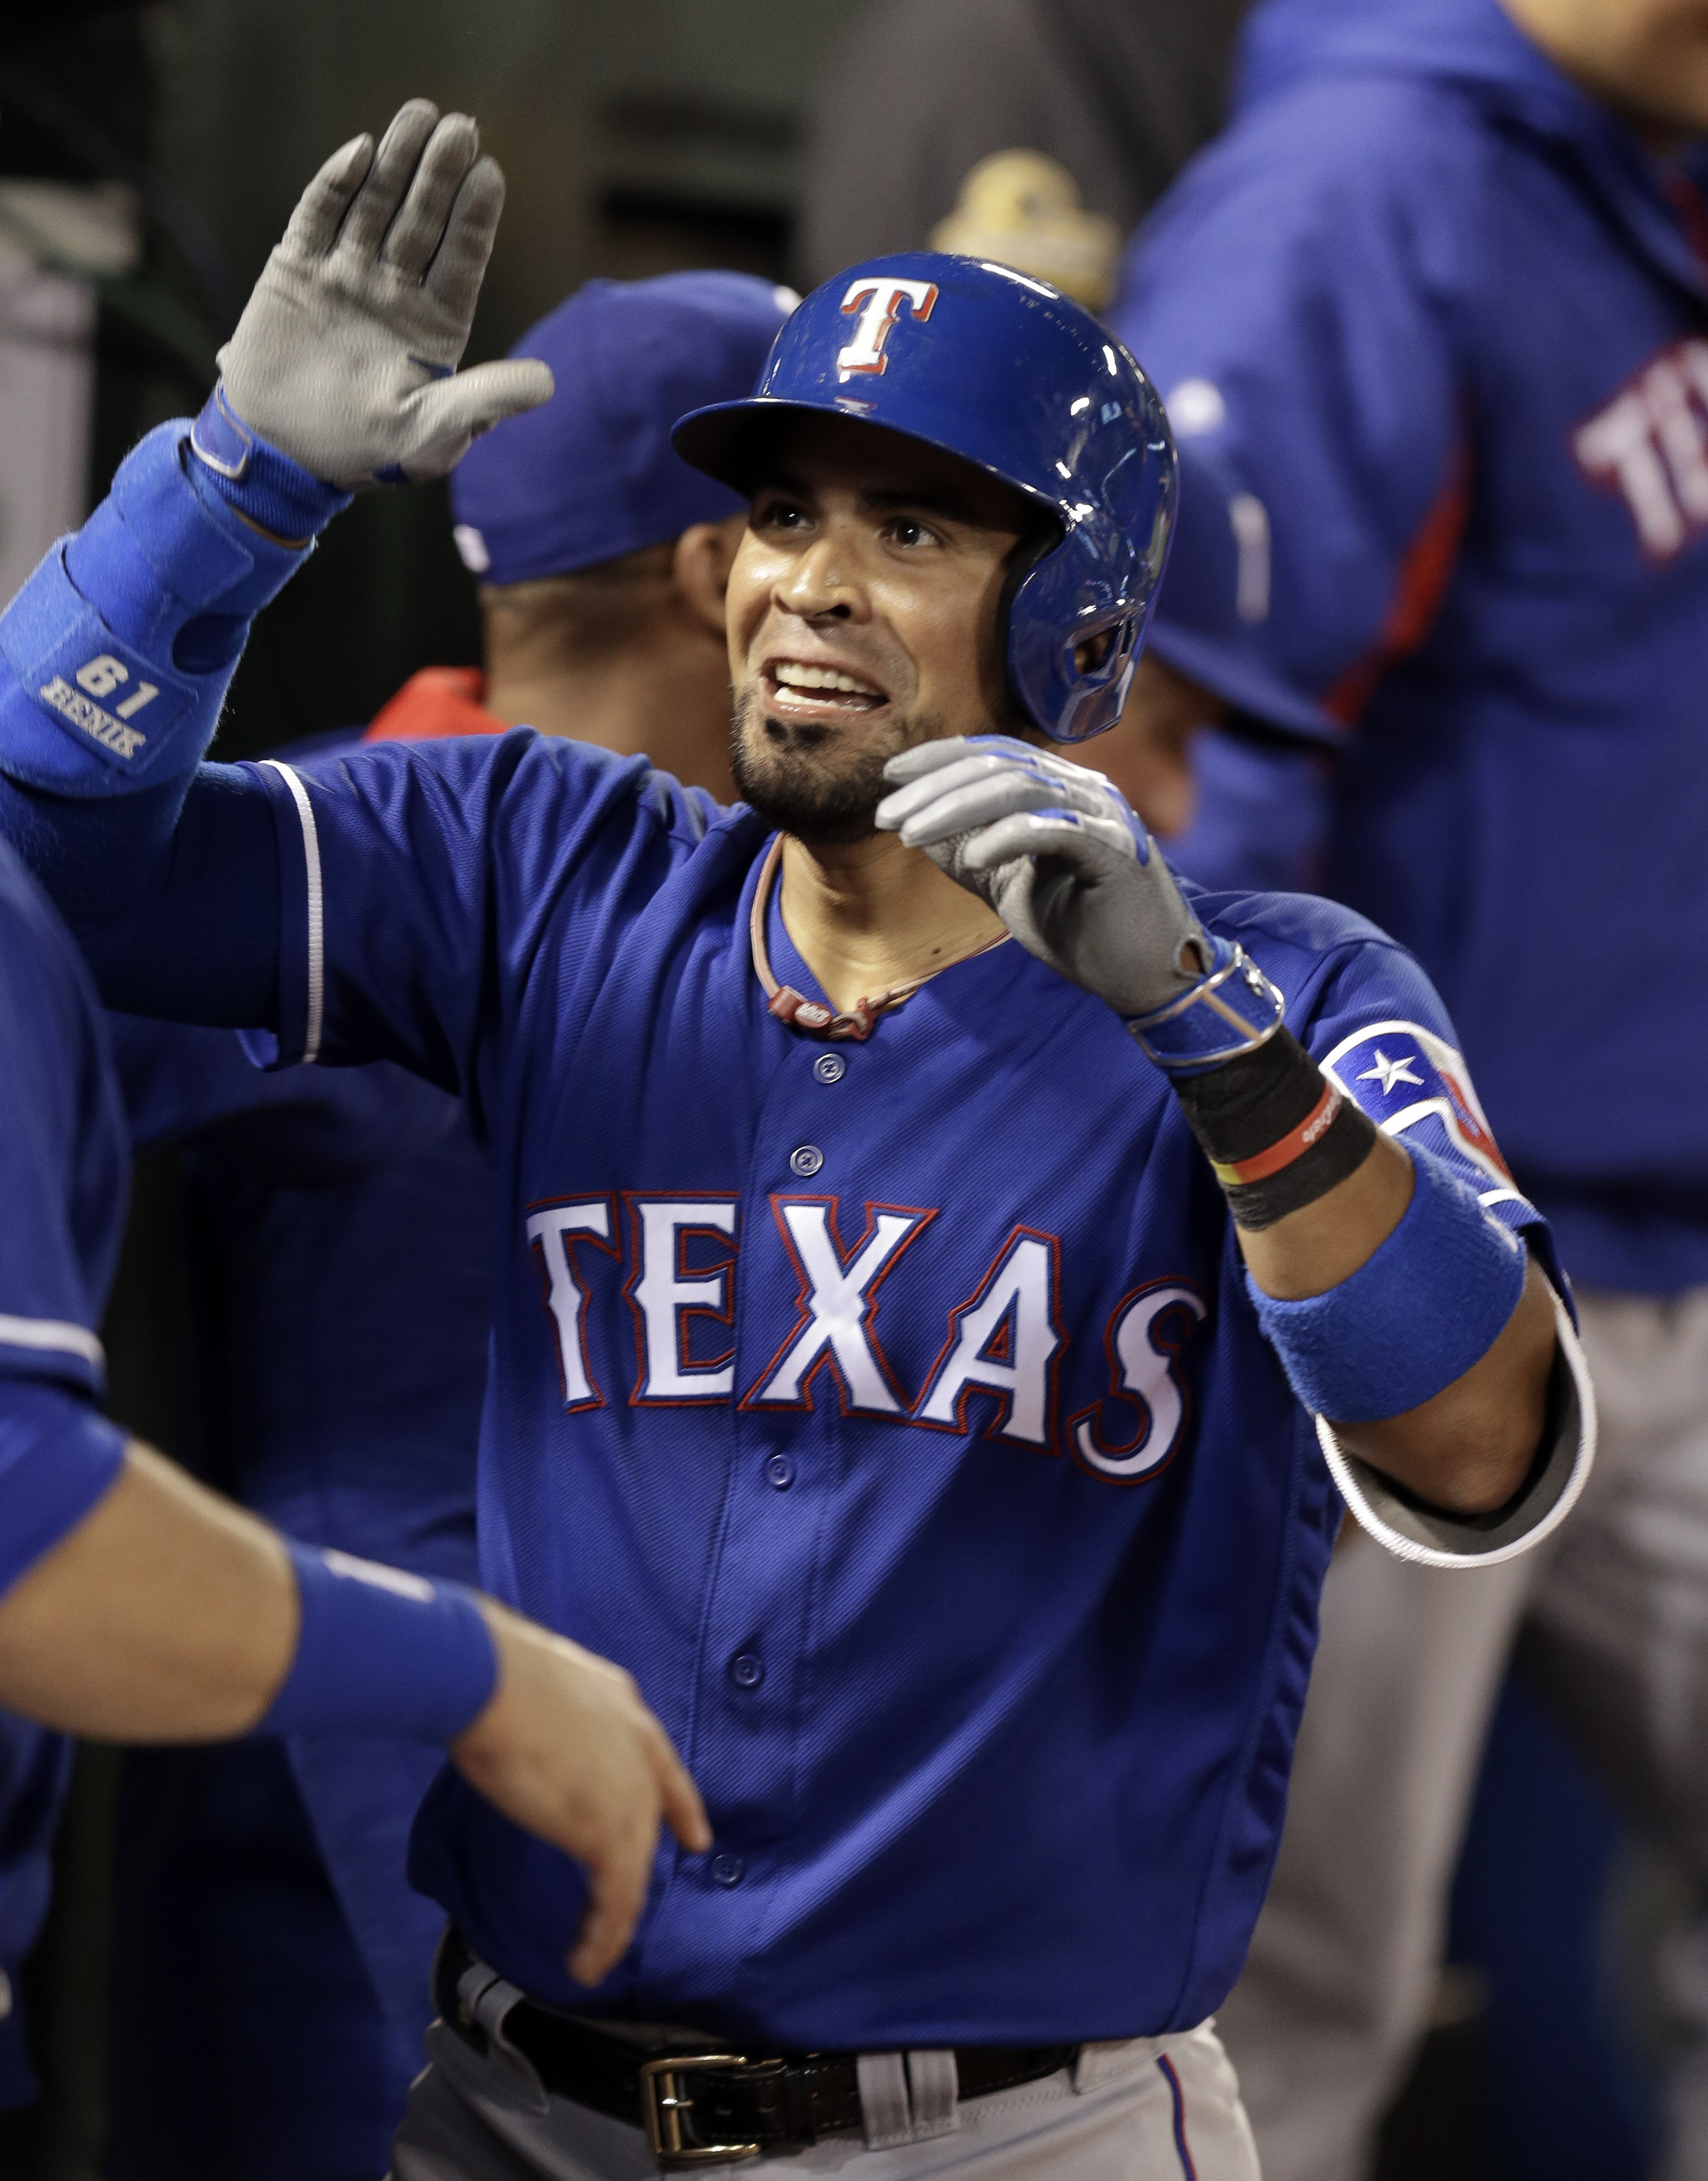 Texas Rangers' Robinson Chirinos celebrates after hitting a home run off Oakland Athletics' John Axford in the seventh inning of a baseball game Wednesday, June 15, 2016, in Oakland, Calif. (AP Photo/Ben Margot)